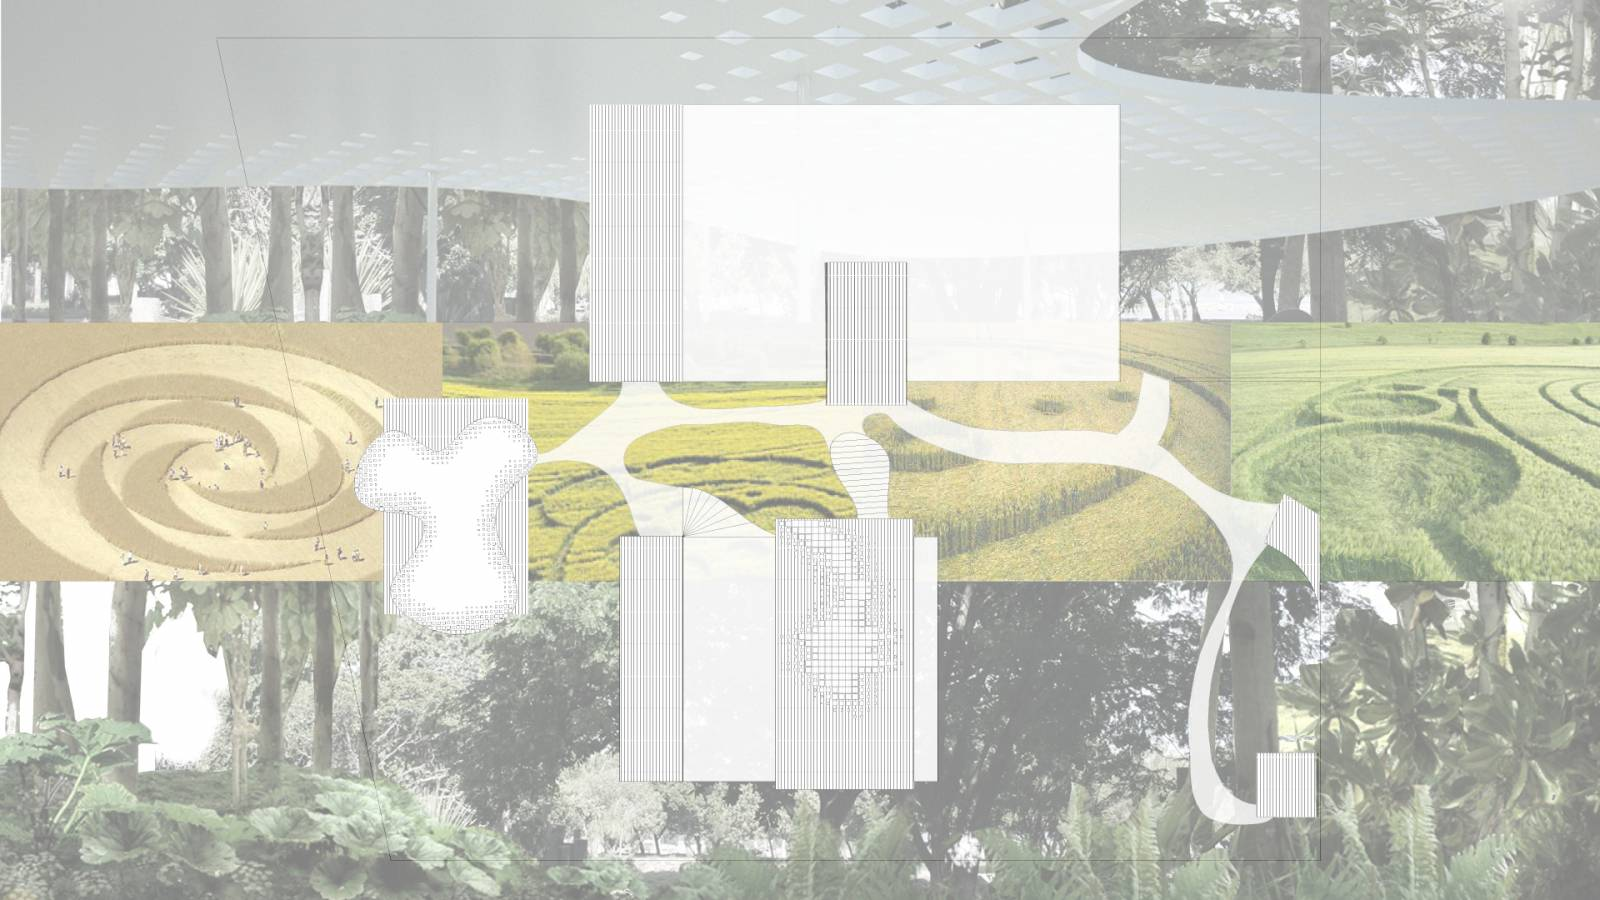 FINAL DIAGRAM - São Paulo Art Pavillion - SPOL Architects